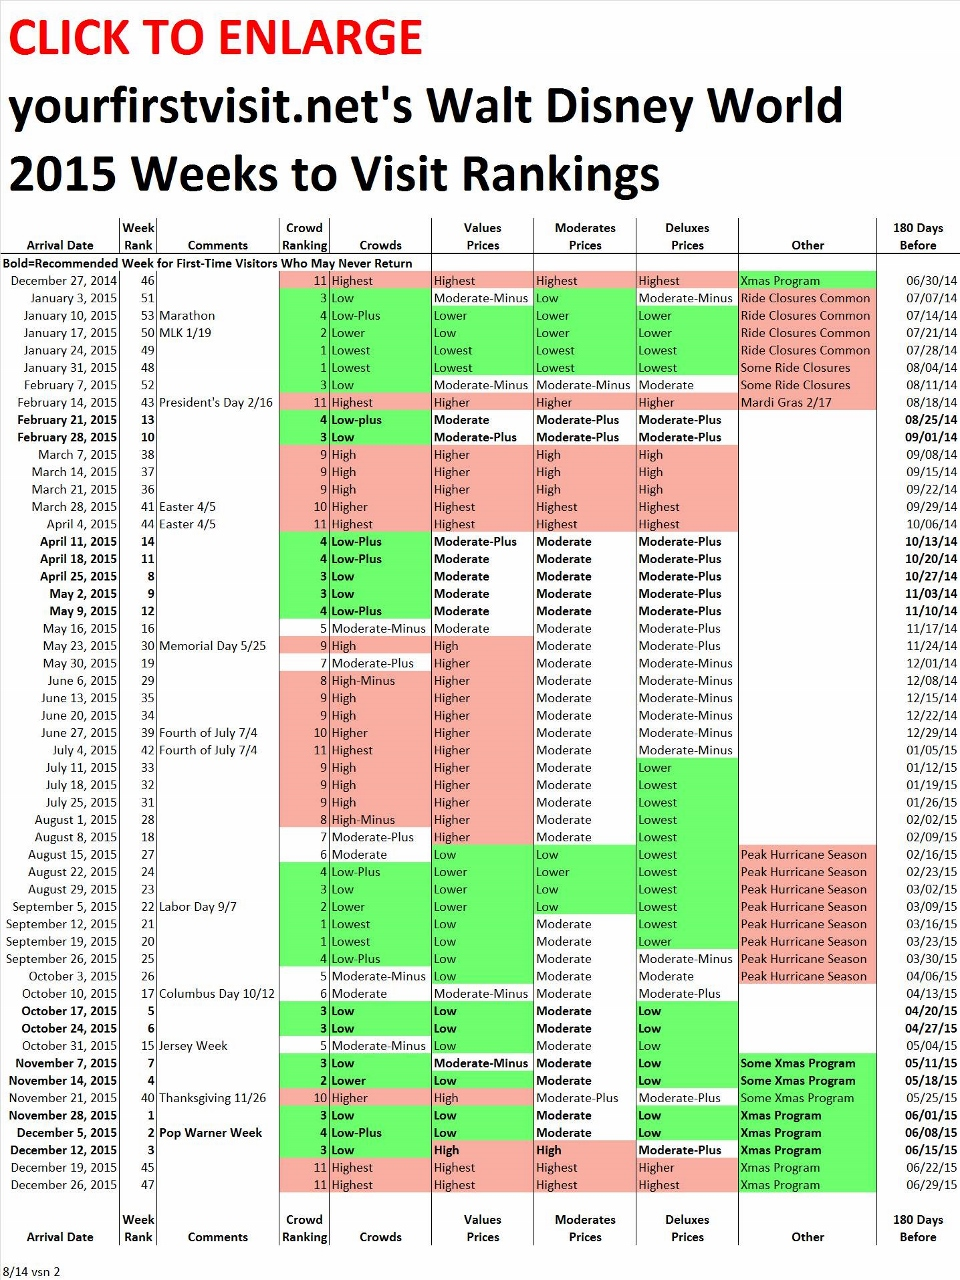 Disney World 2015 Week Rankings from yourfirstvisit.net (960x1280)